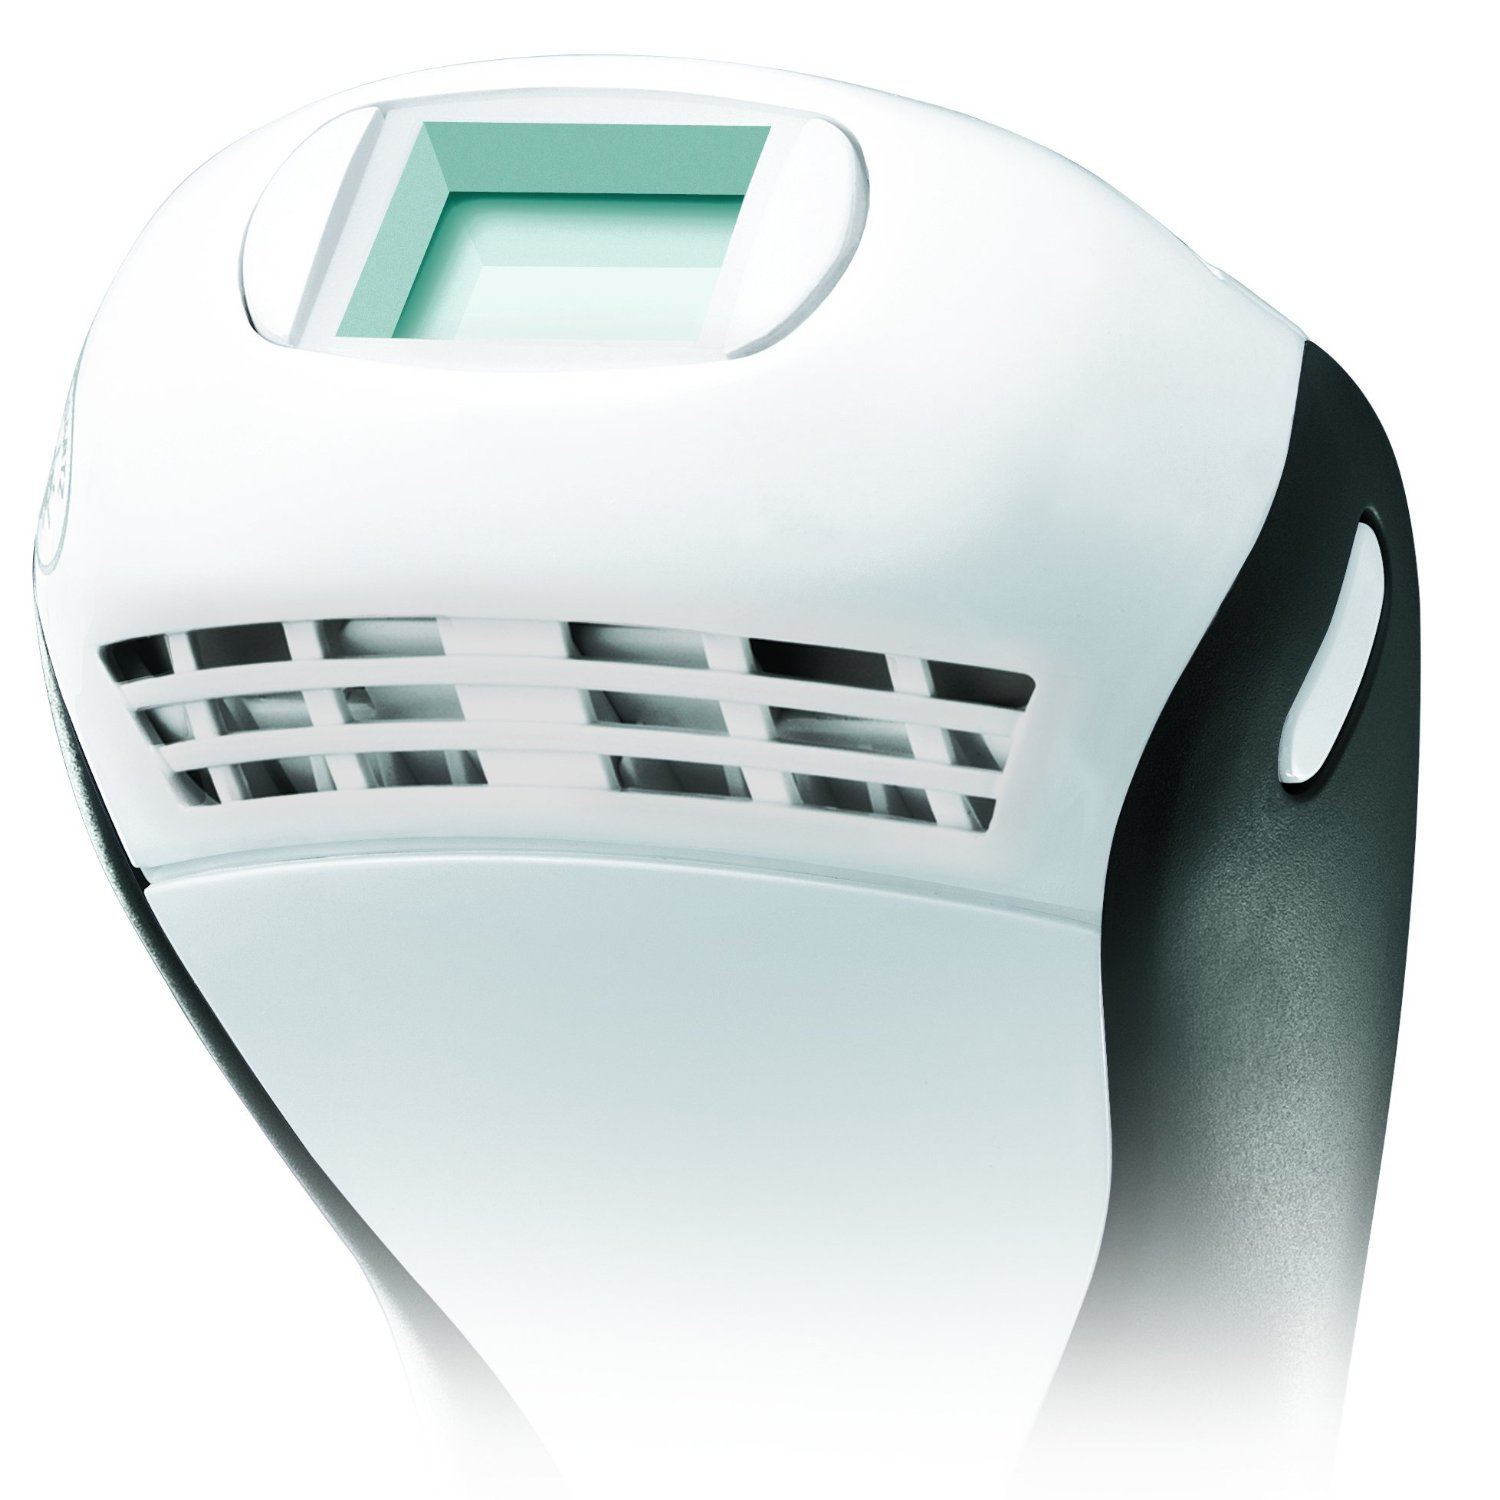 remington ipl6250 i-light essentiel epilateur lumiere pulsee avis